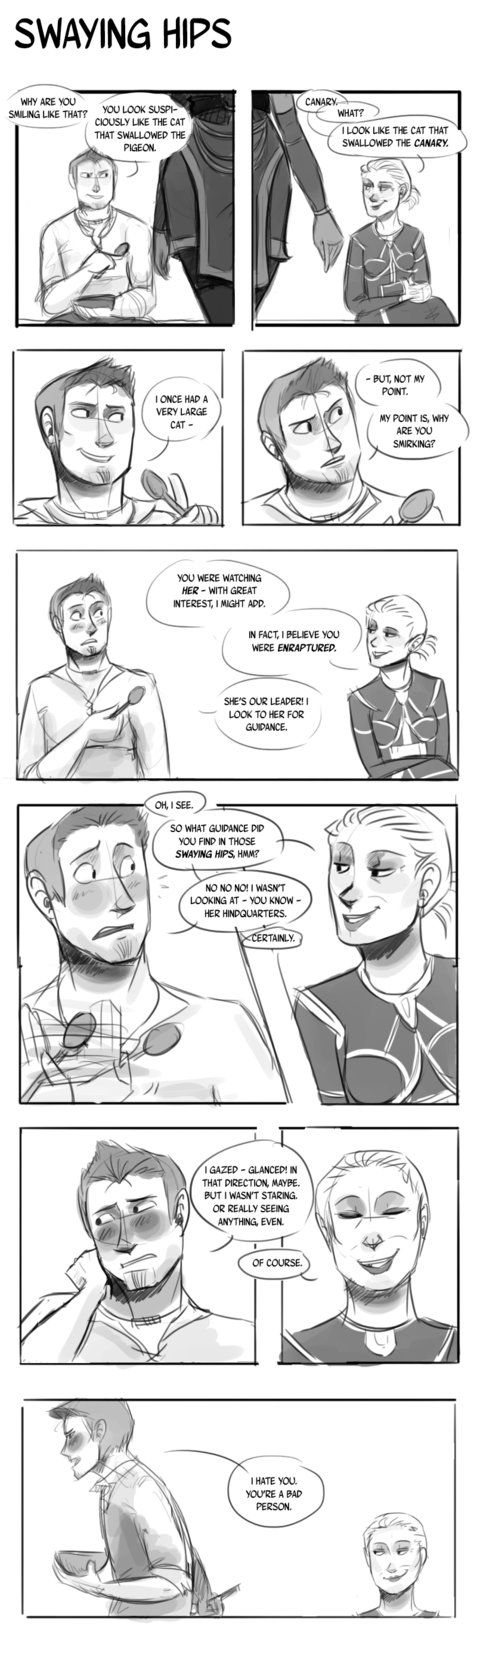 a.k.a. Alistair get dat booty. a.k.a. Wynne is a troll Love Alistair, love Wynne. Dragon Age Origins banter is fantastic. I'm thinking of doing Shale and Zevran at some point. How does one draw han...